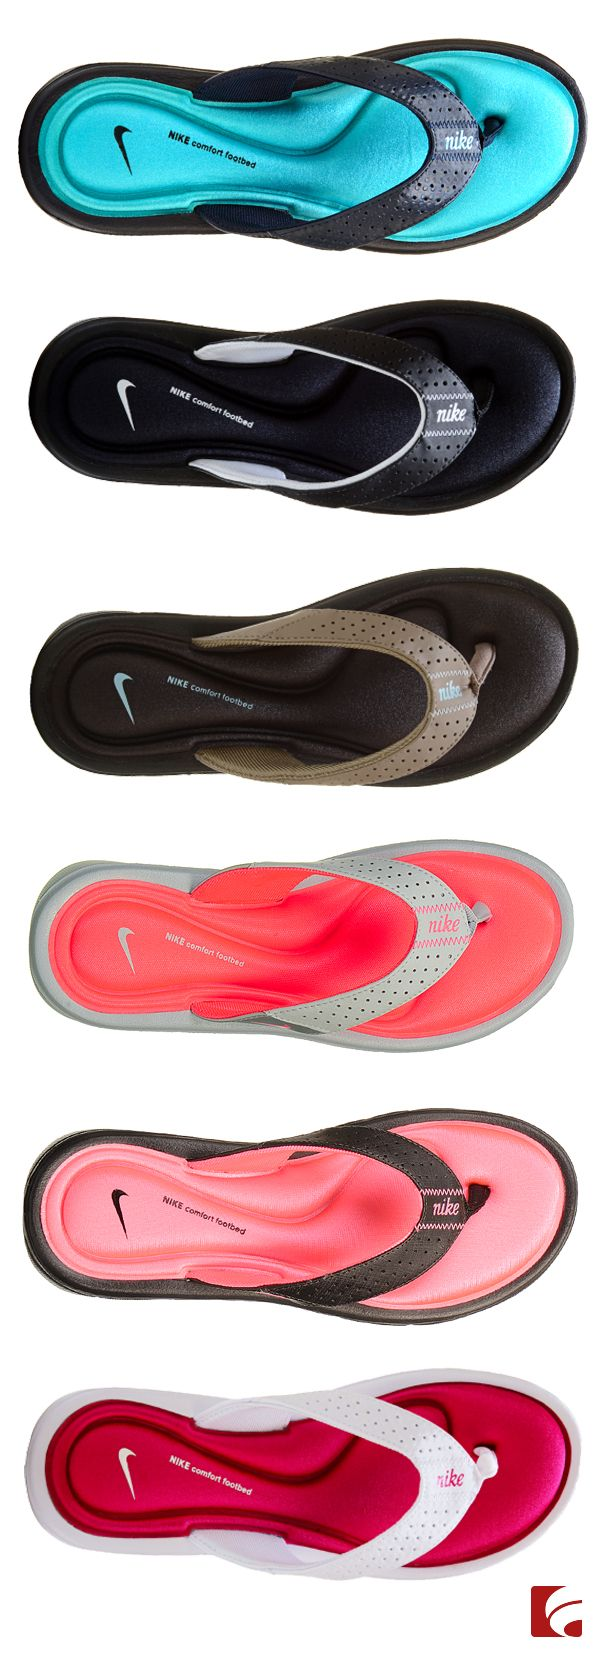 So many colors, so little time! With the Nike Comfort Thong sandal coming in so many colors, how's a girl to choose? Pick your favorite color or pick one for every day of the week...your options are limitless!